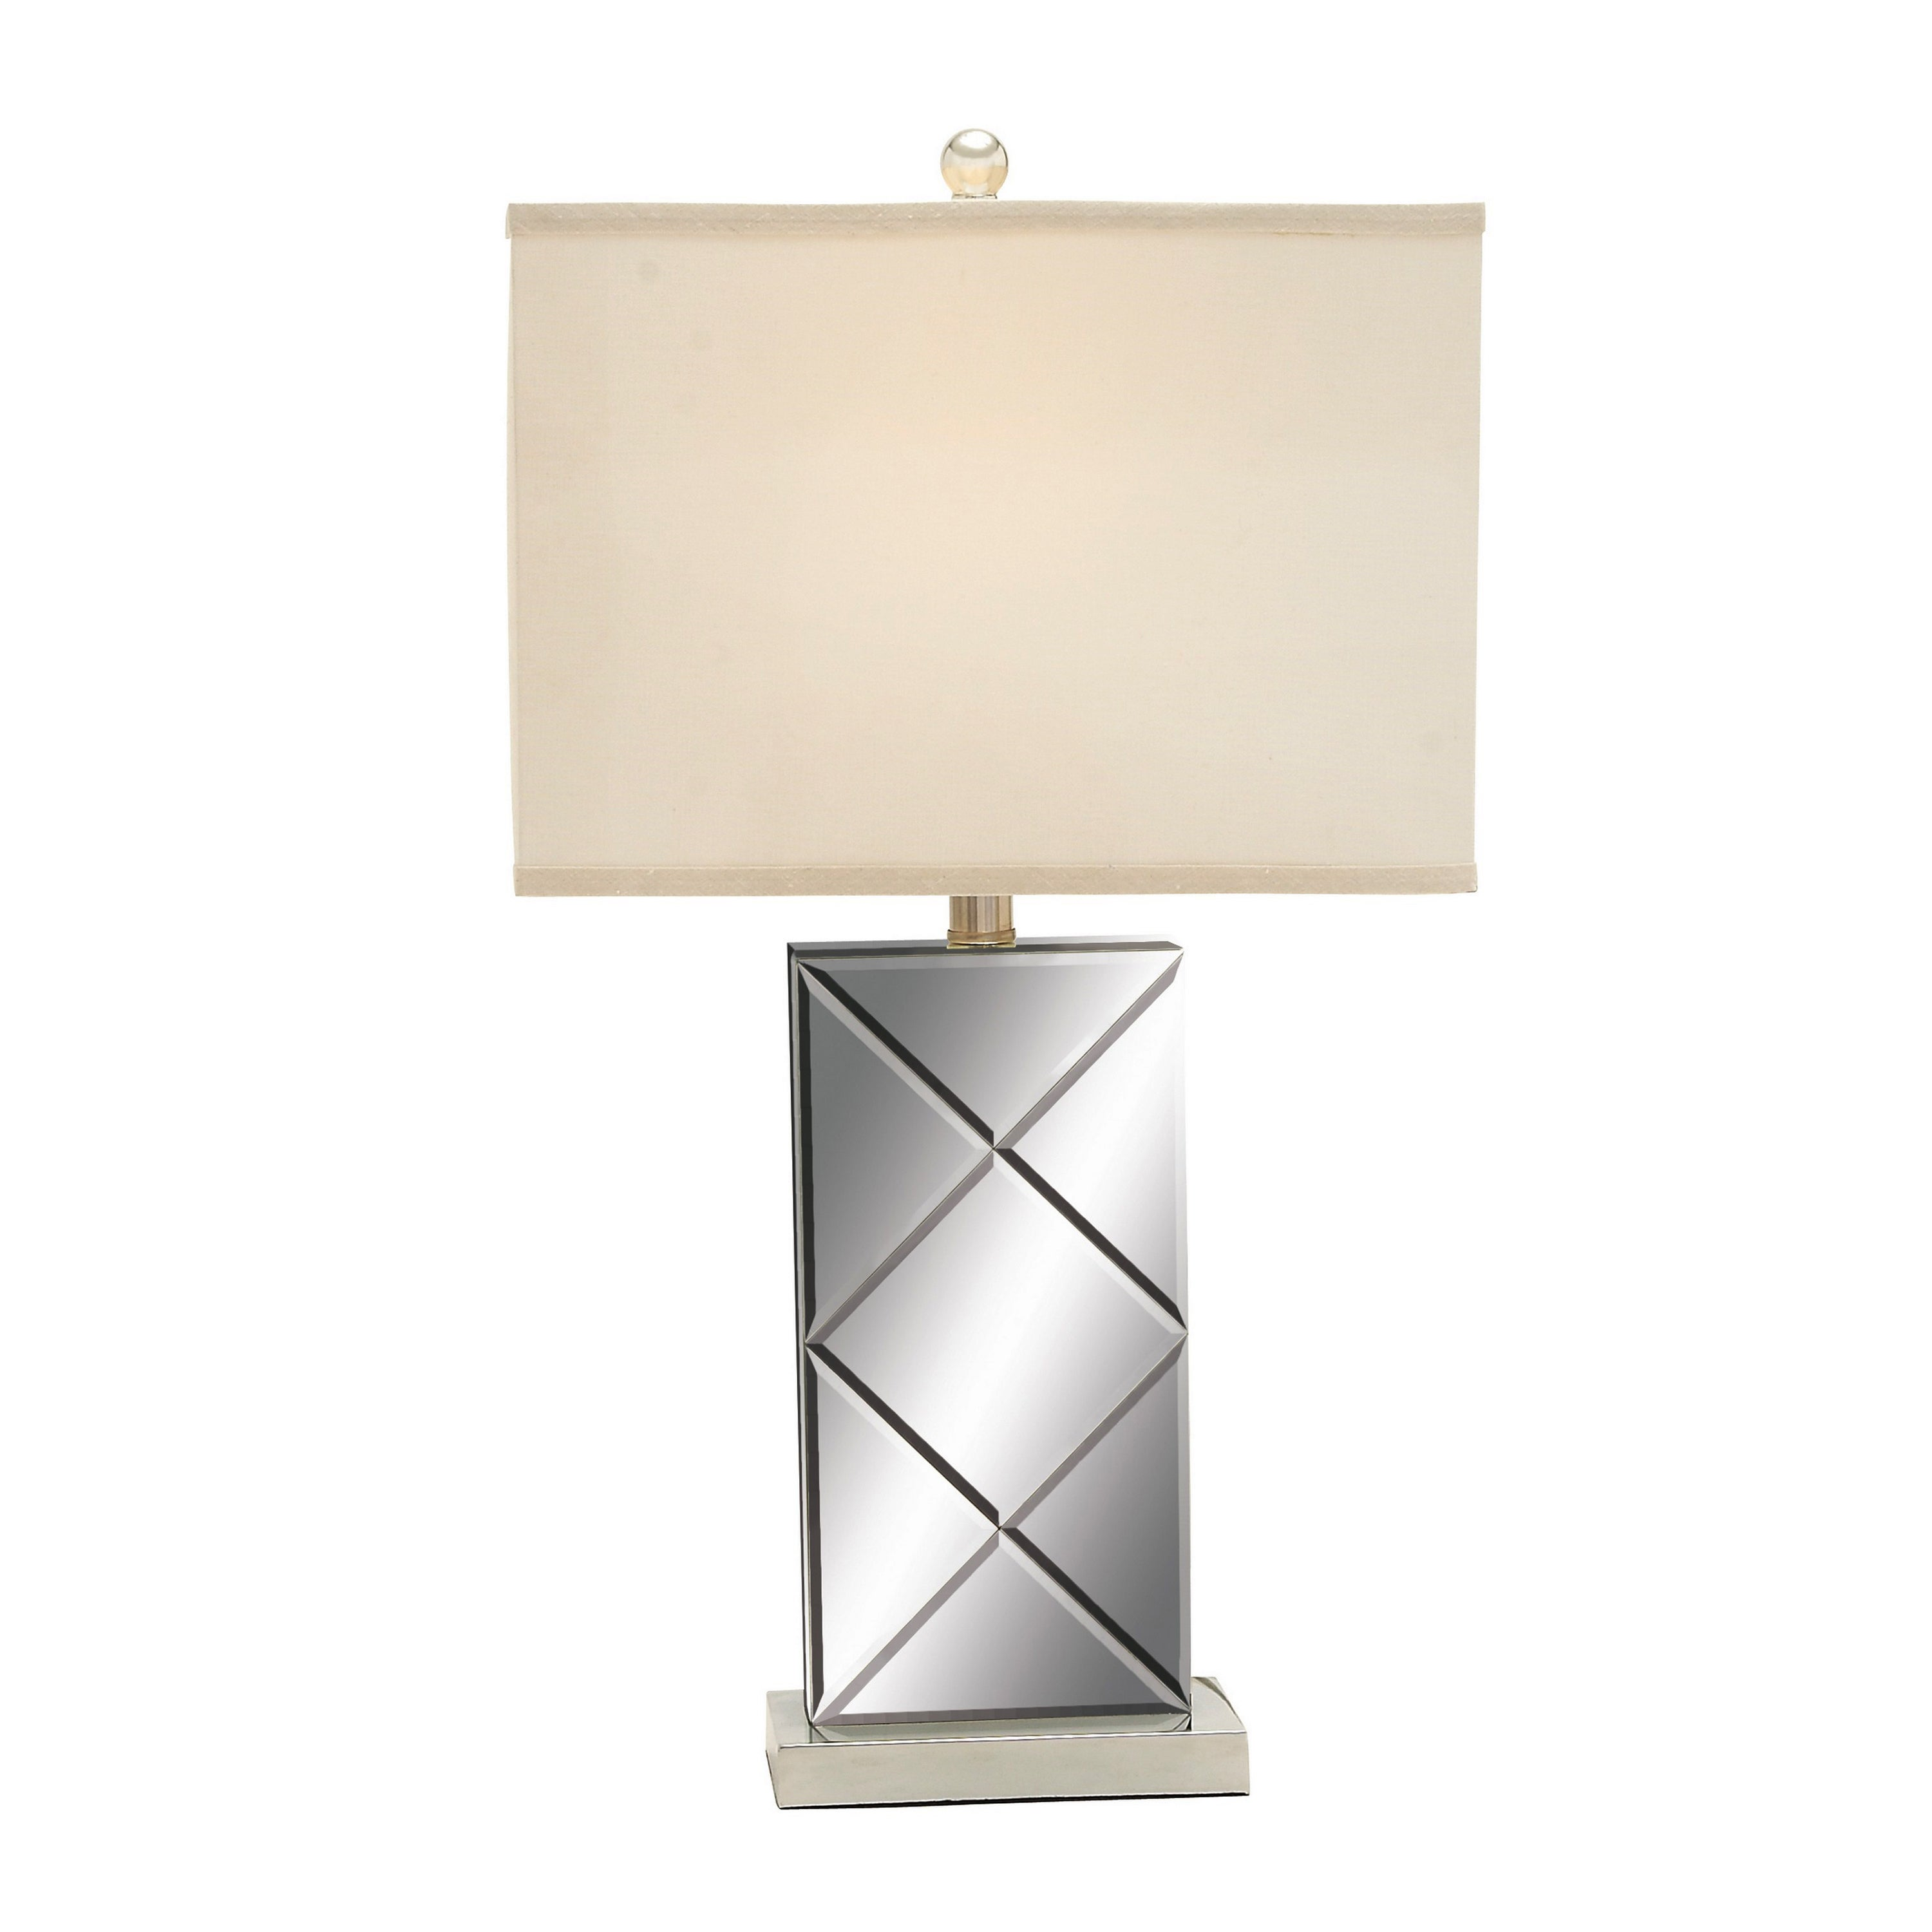 Illusion Contemporary Mirrored Table Lamp Set Of 2 Free Shipping Today 9551688